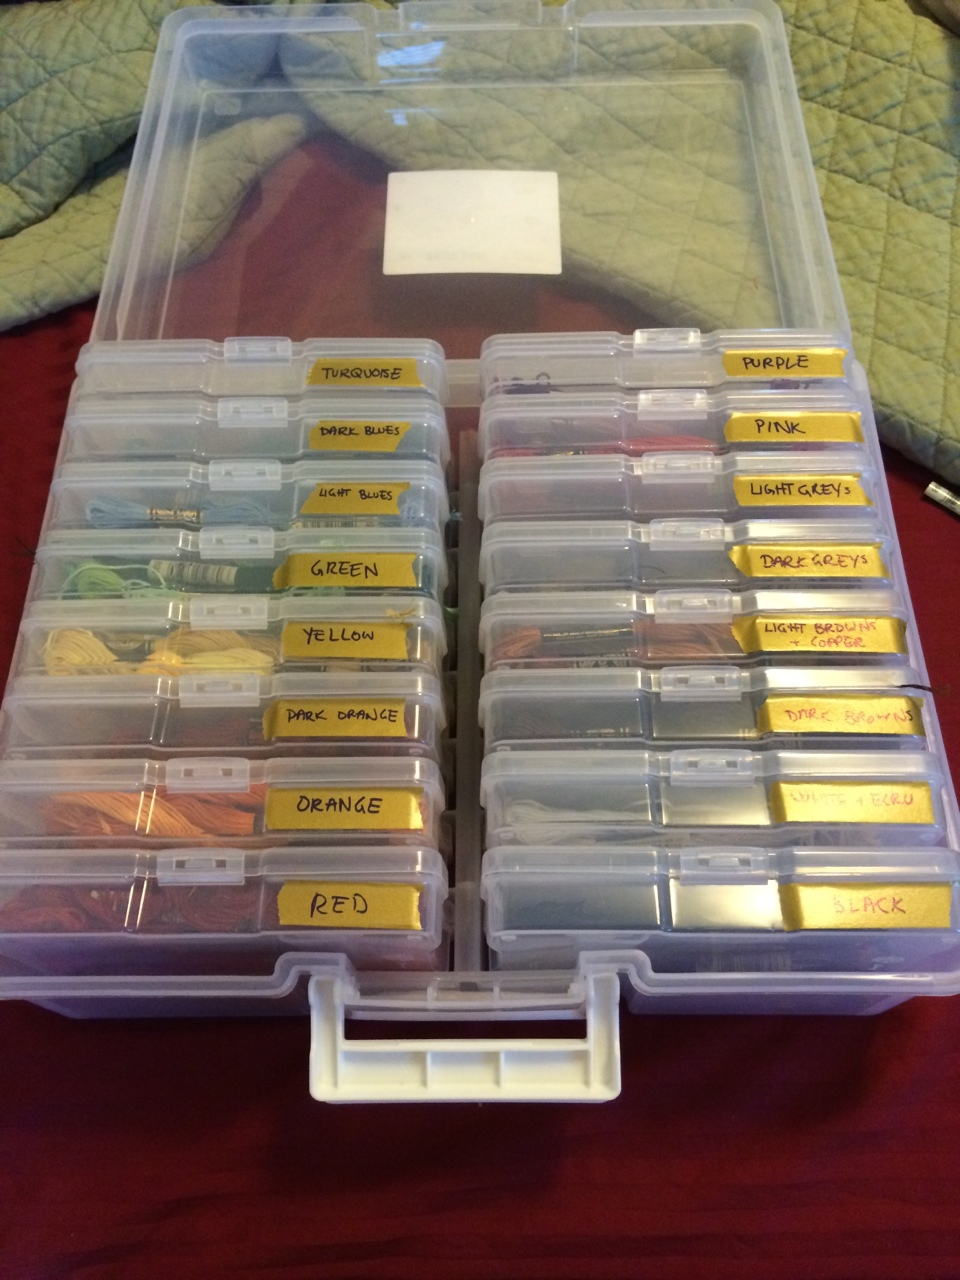 Treated myself to a new floss organization box since I had to shop for comic con supplies!